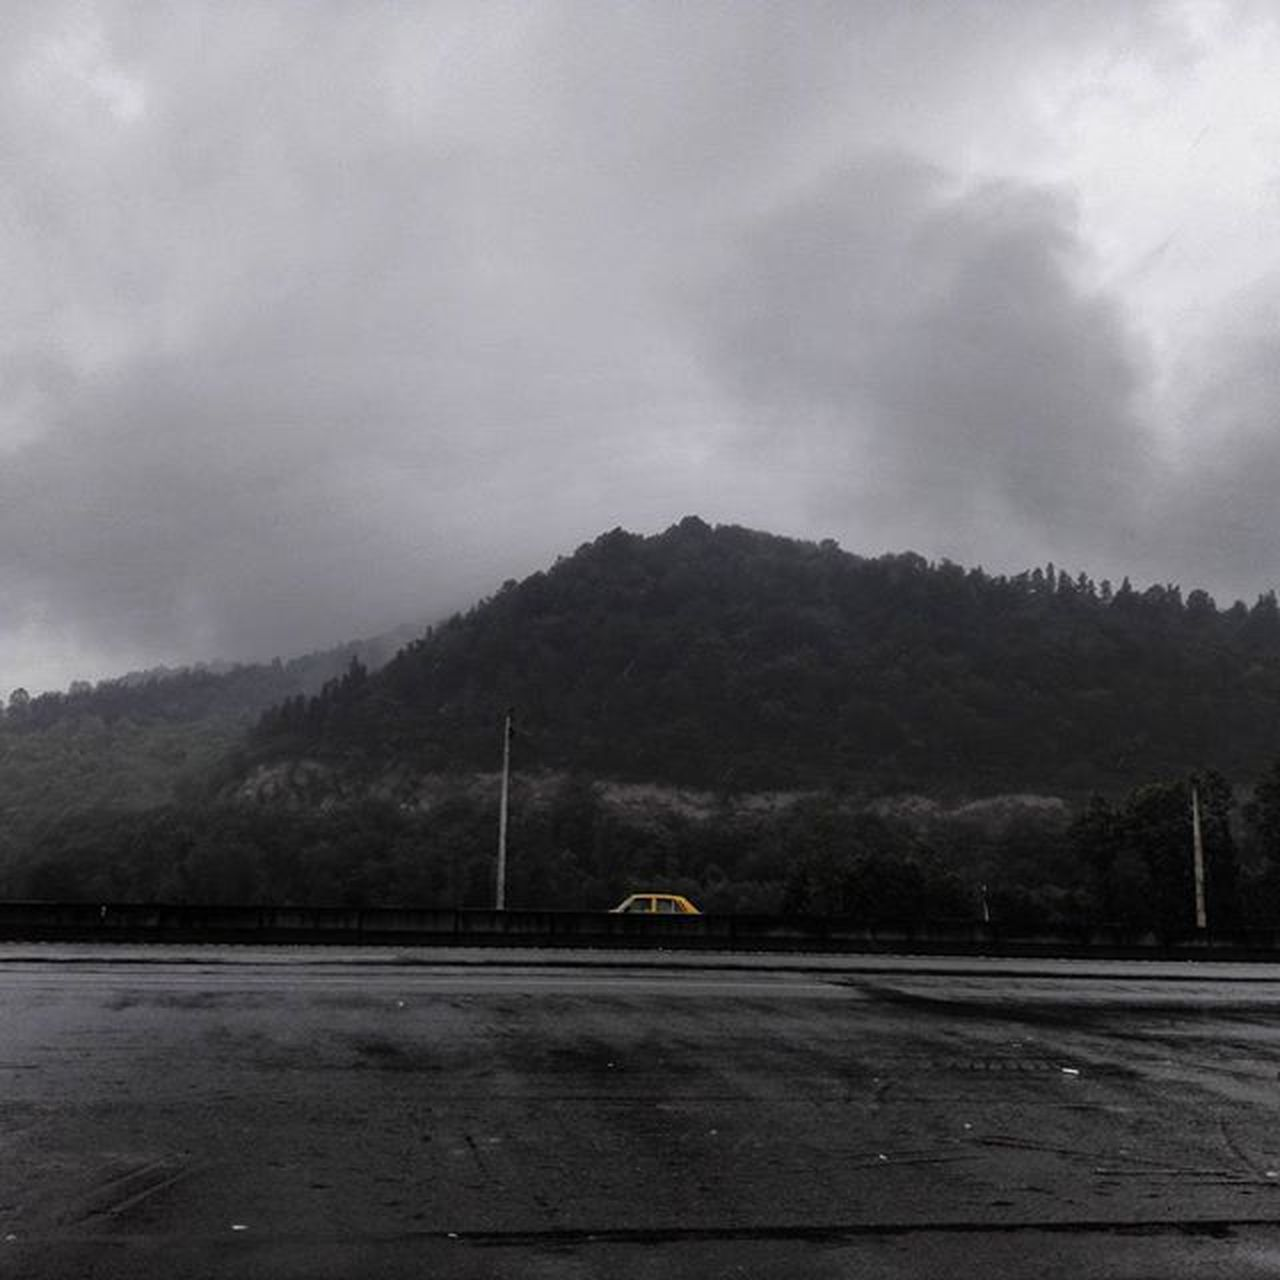 transportation, road, car, mountain, the way forward, cloud - sky, outdoors, no people, day, sky, nature, tree